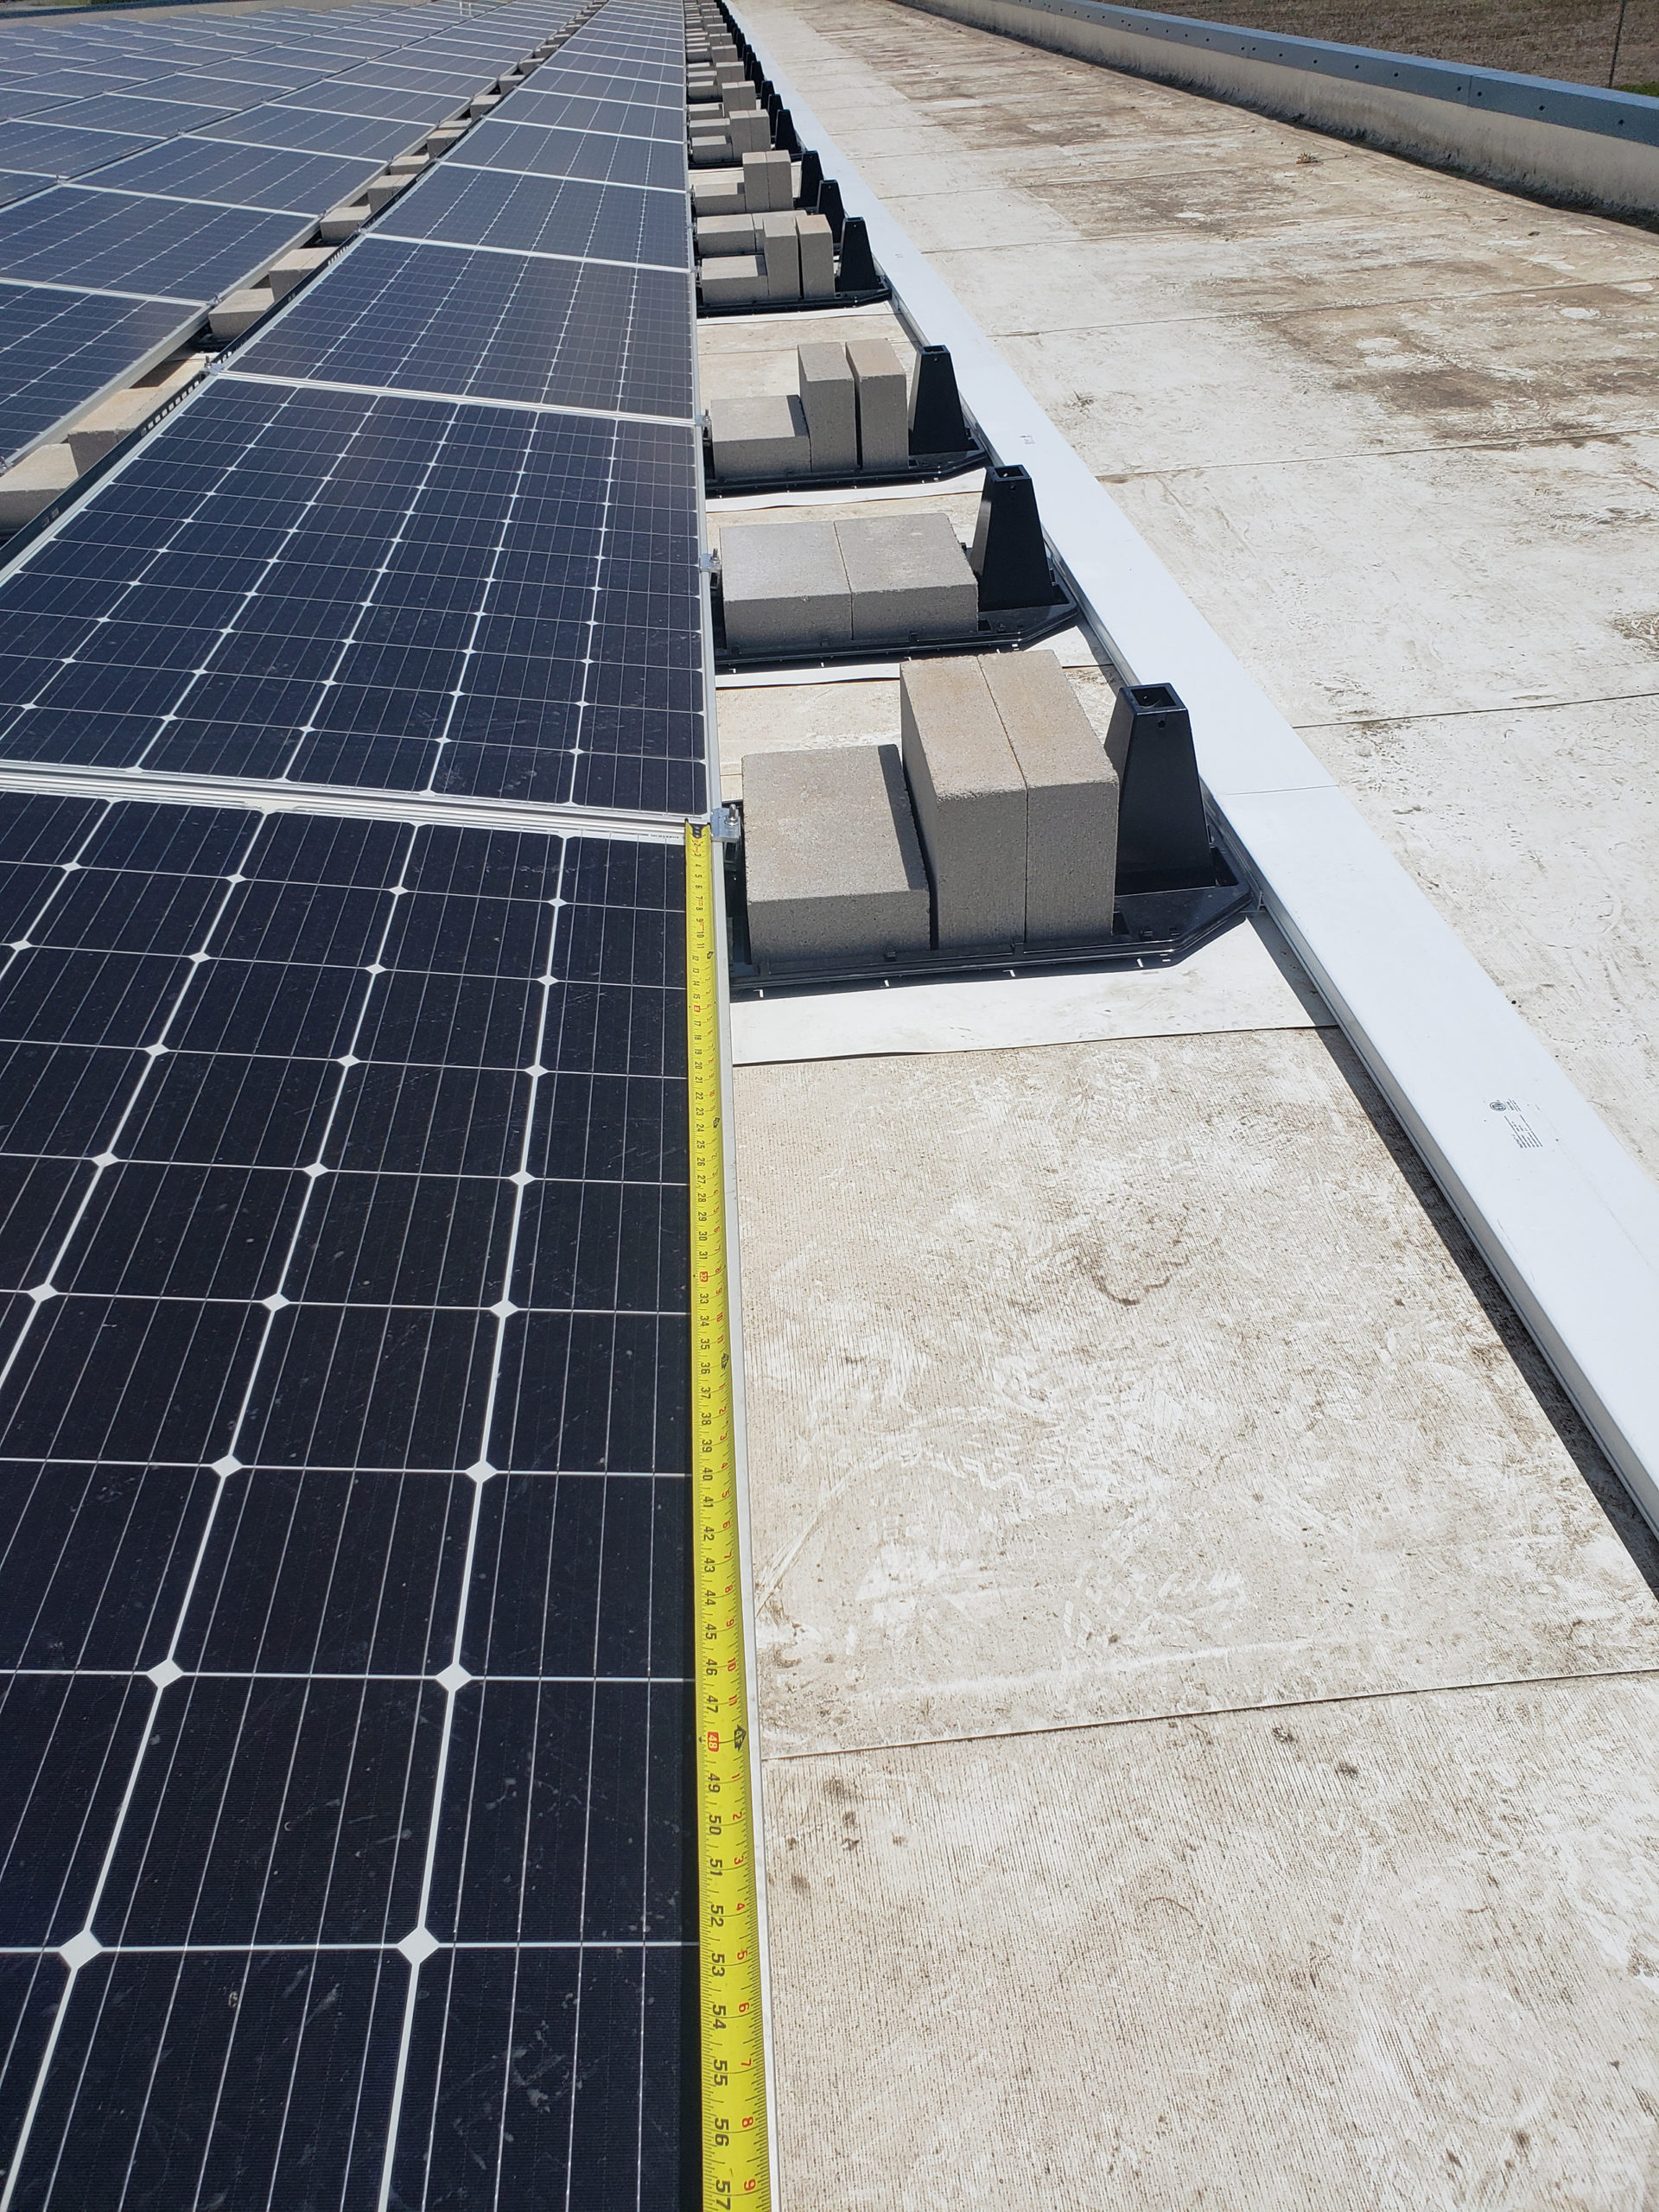 A close up of the solar panel rows ending is seen. A measuring tape stretches over 60 inches along one edge of the panel to showcase the size.